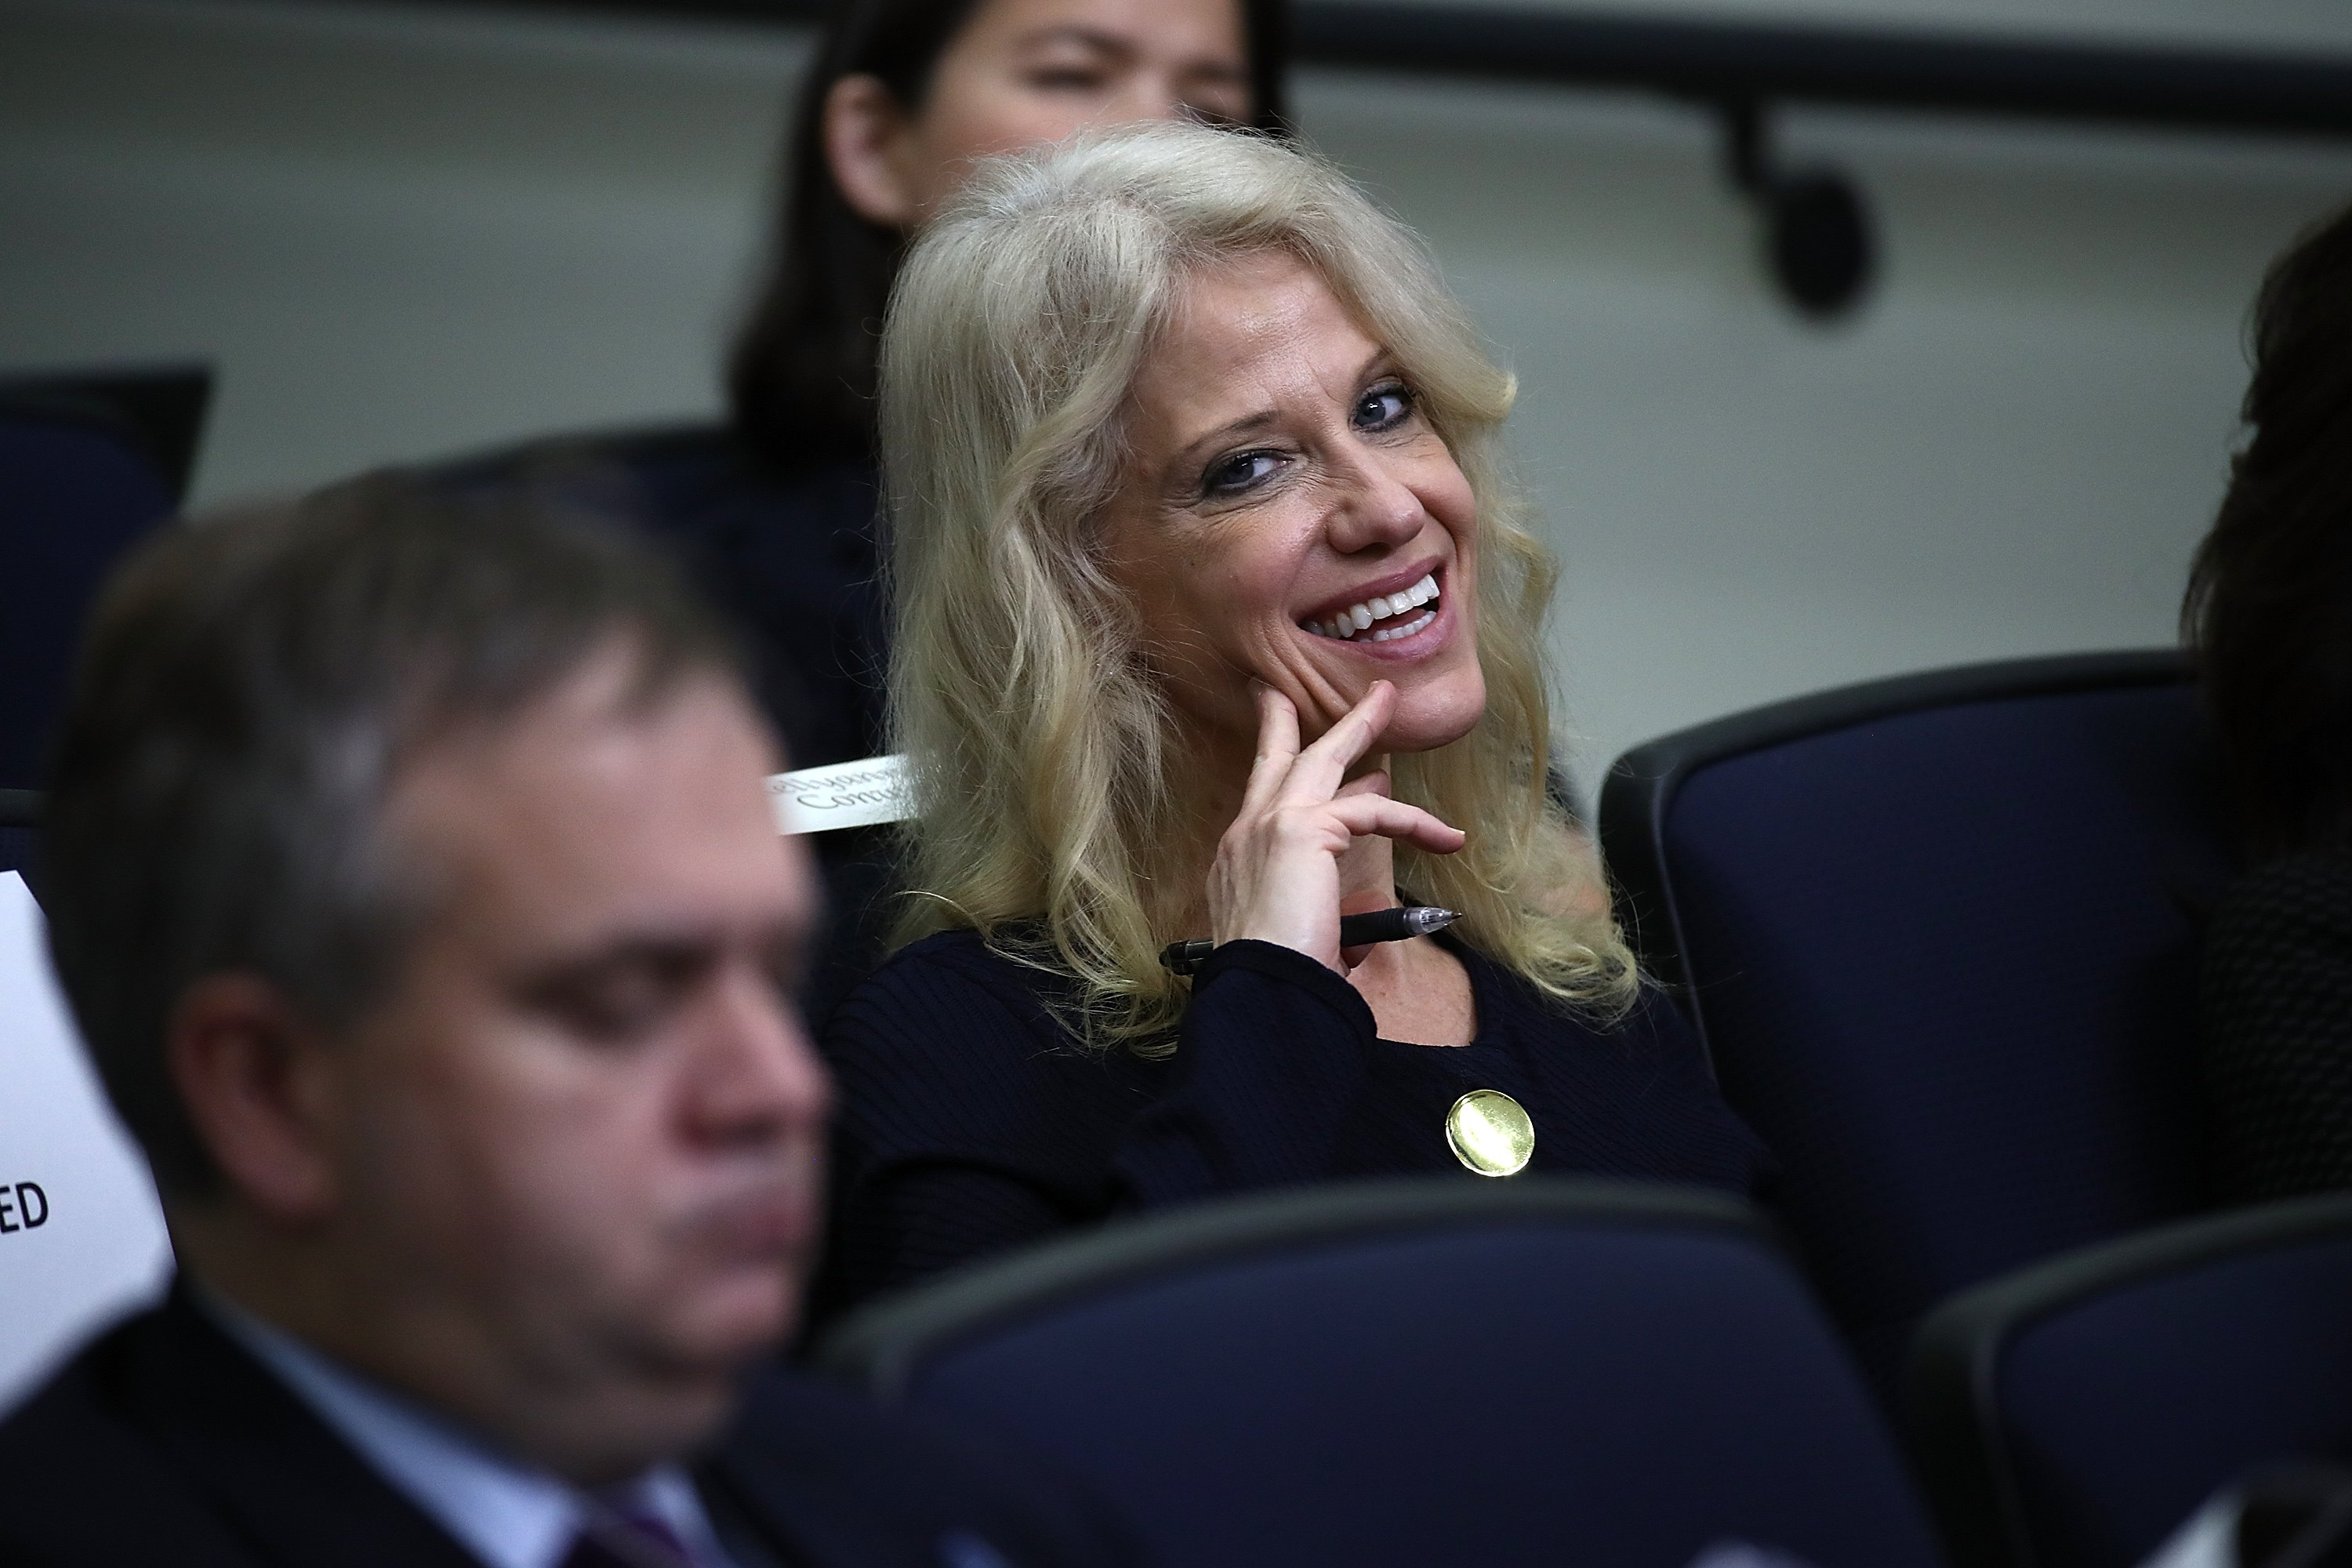 Kellyanne Conway, a counselor to U.S. President Donald Trump, attends an event